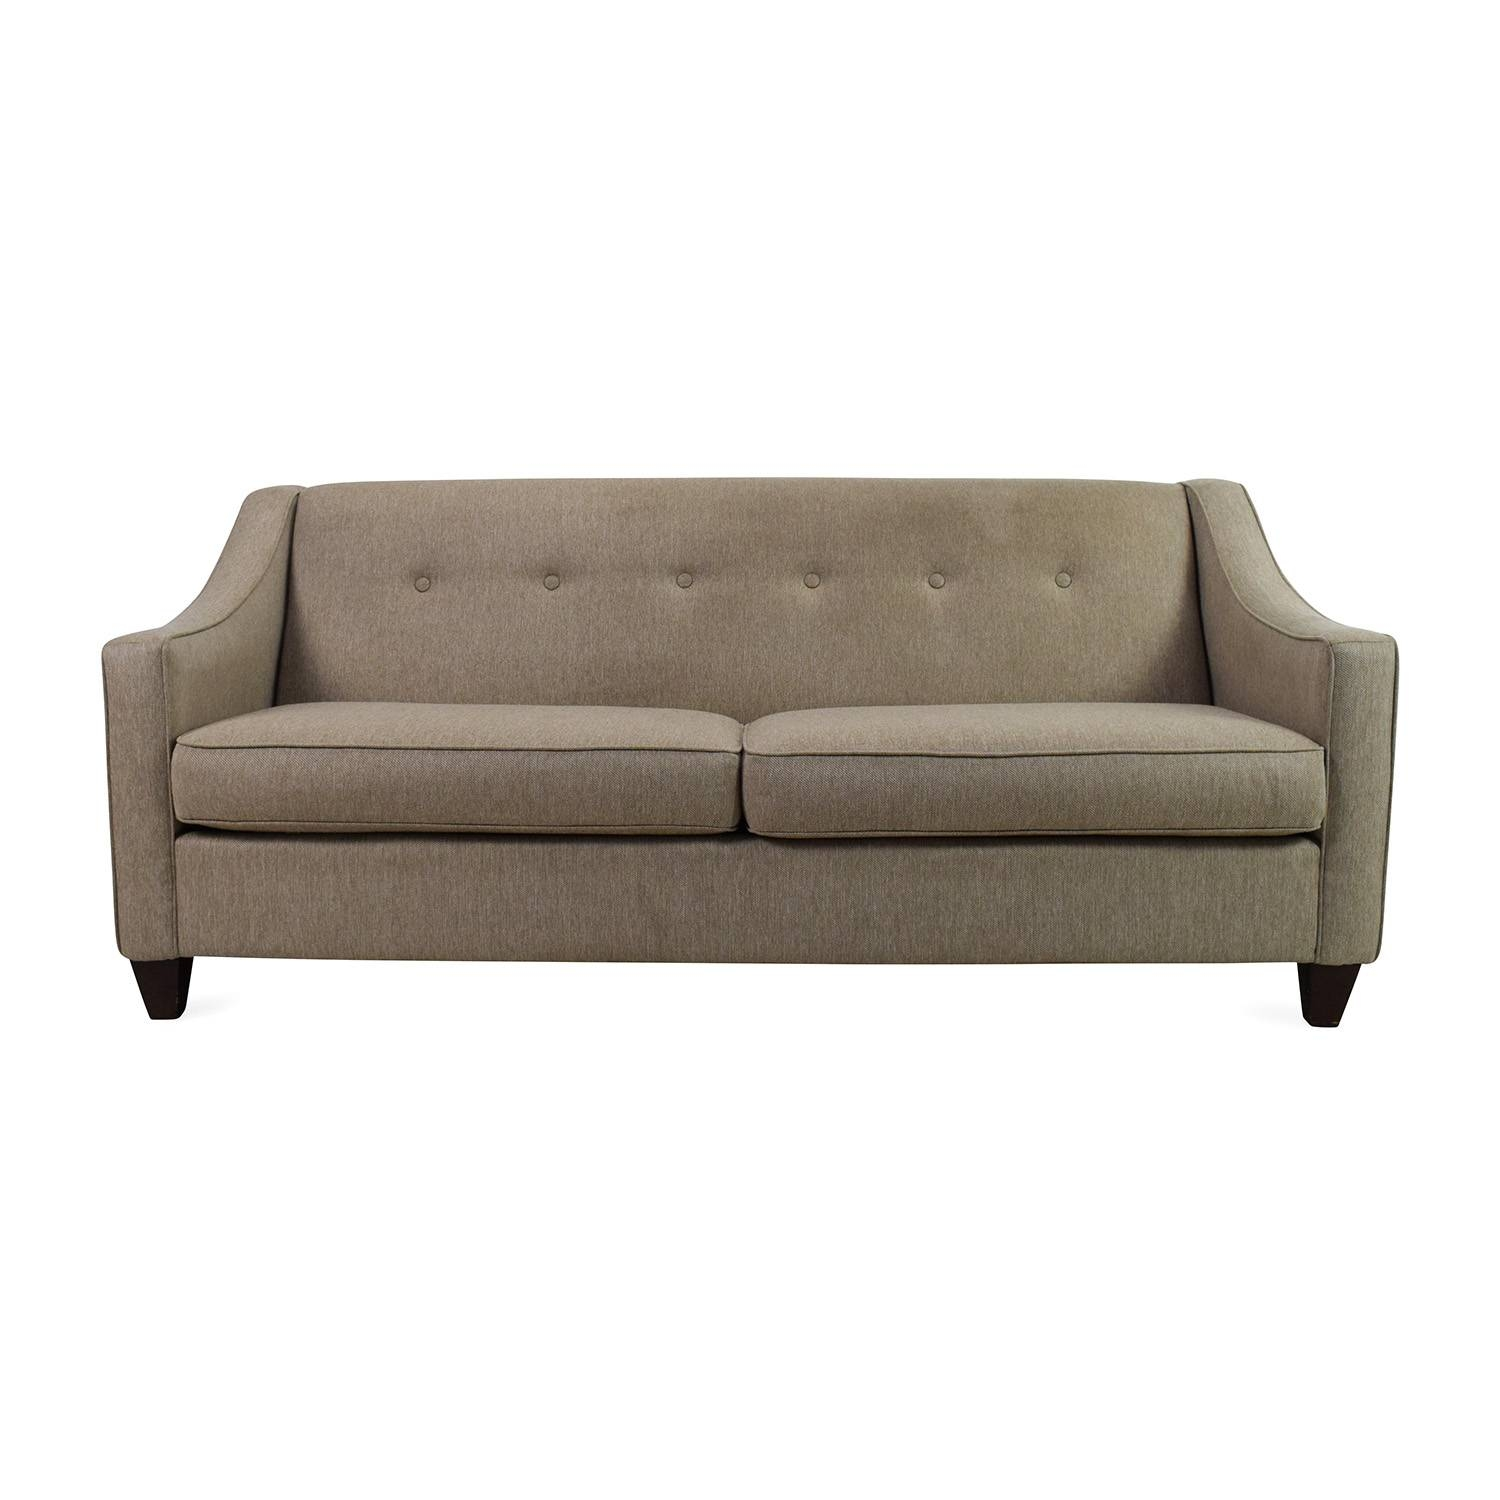 81% Off - Raymour And Flanigan Raymour & Flanigan Ashton Sofa / Sofas throughout Ashton Sofas (Image 7 of 15)